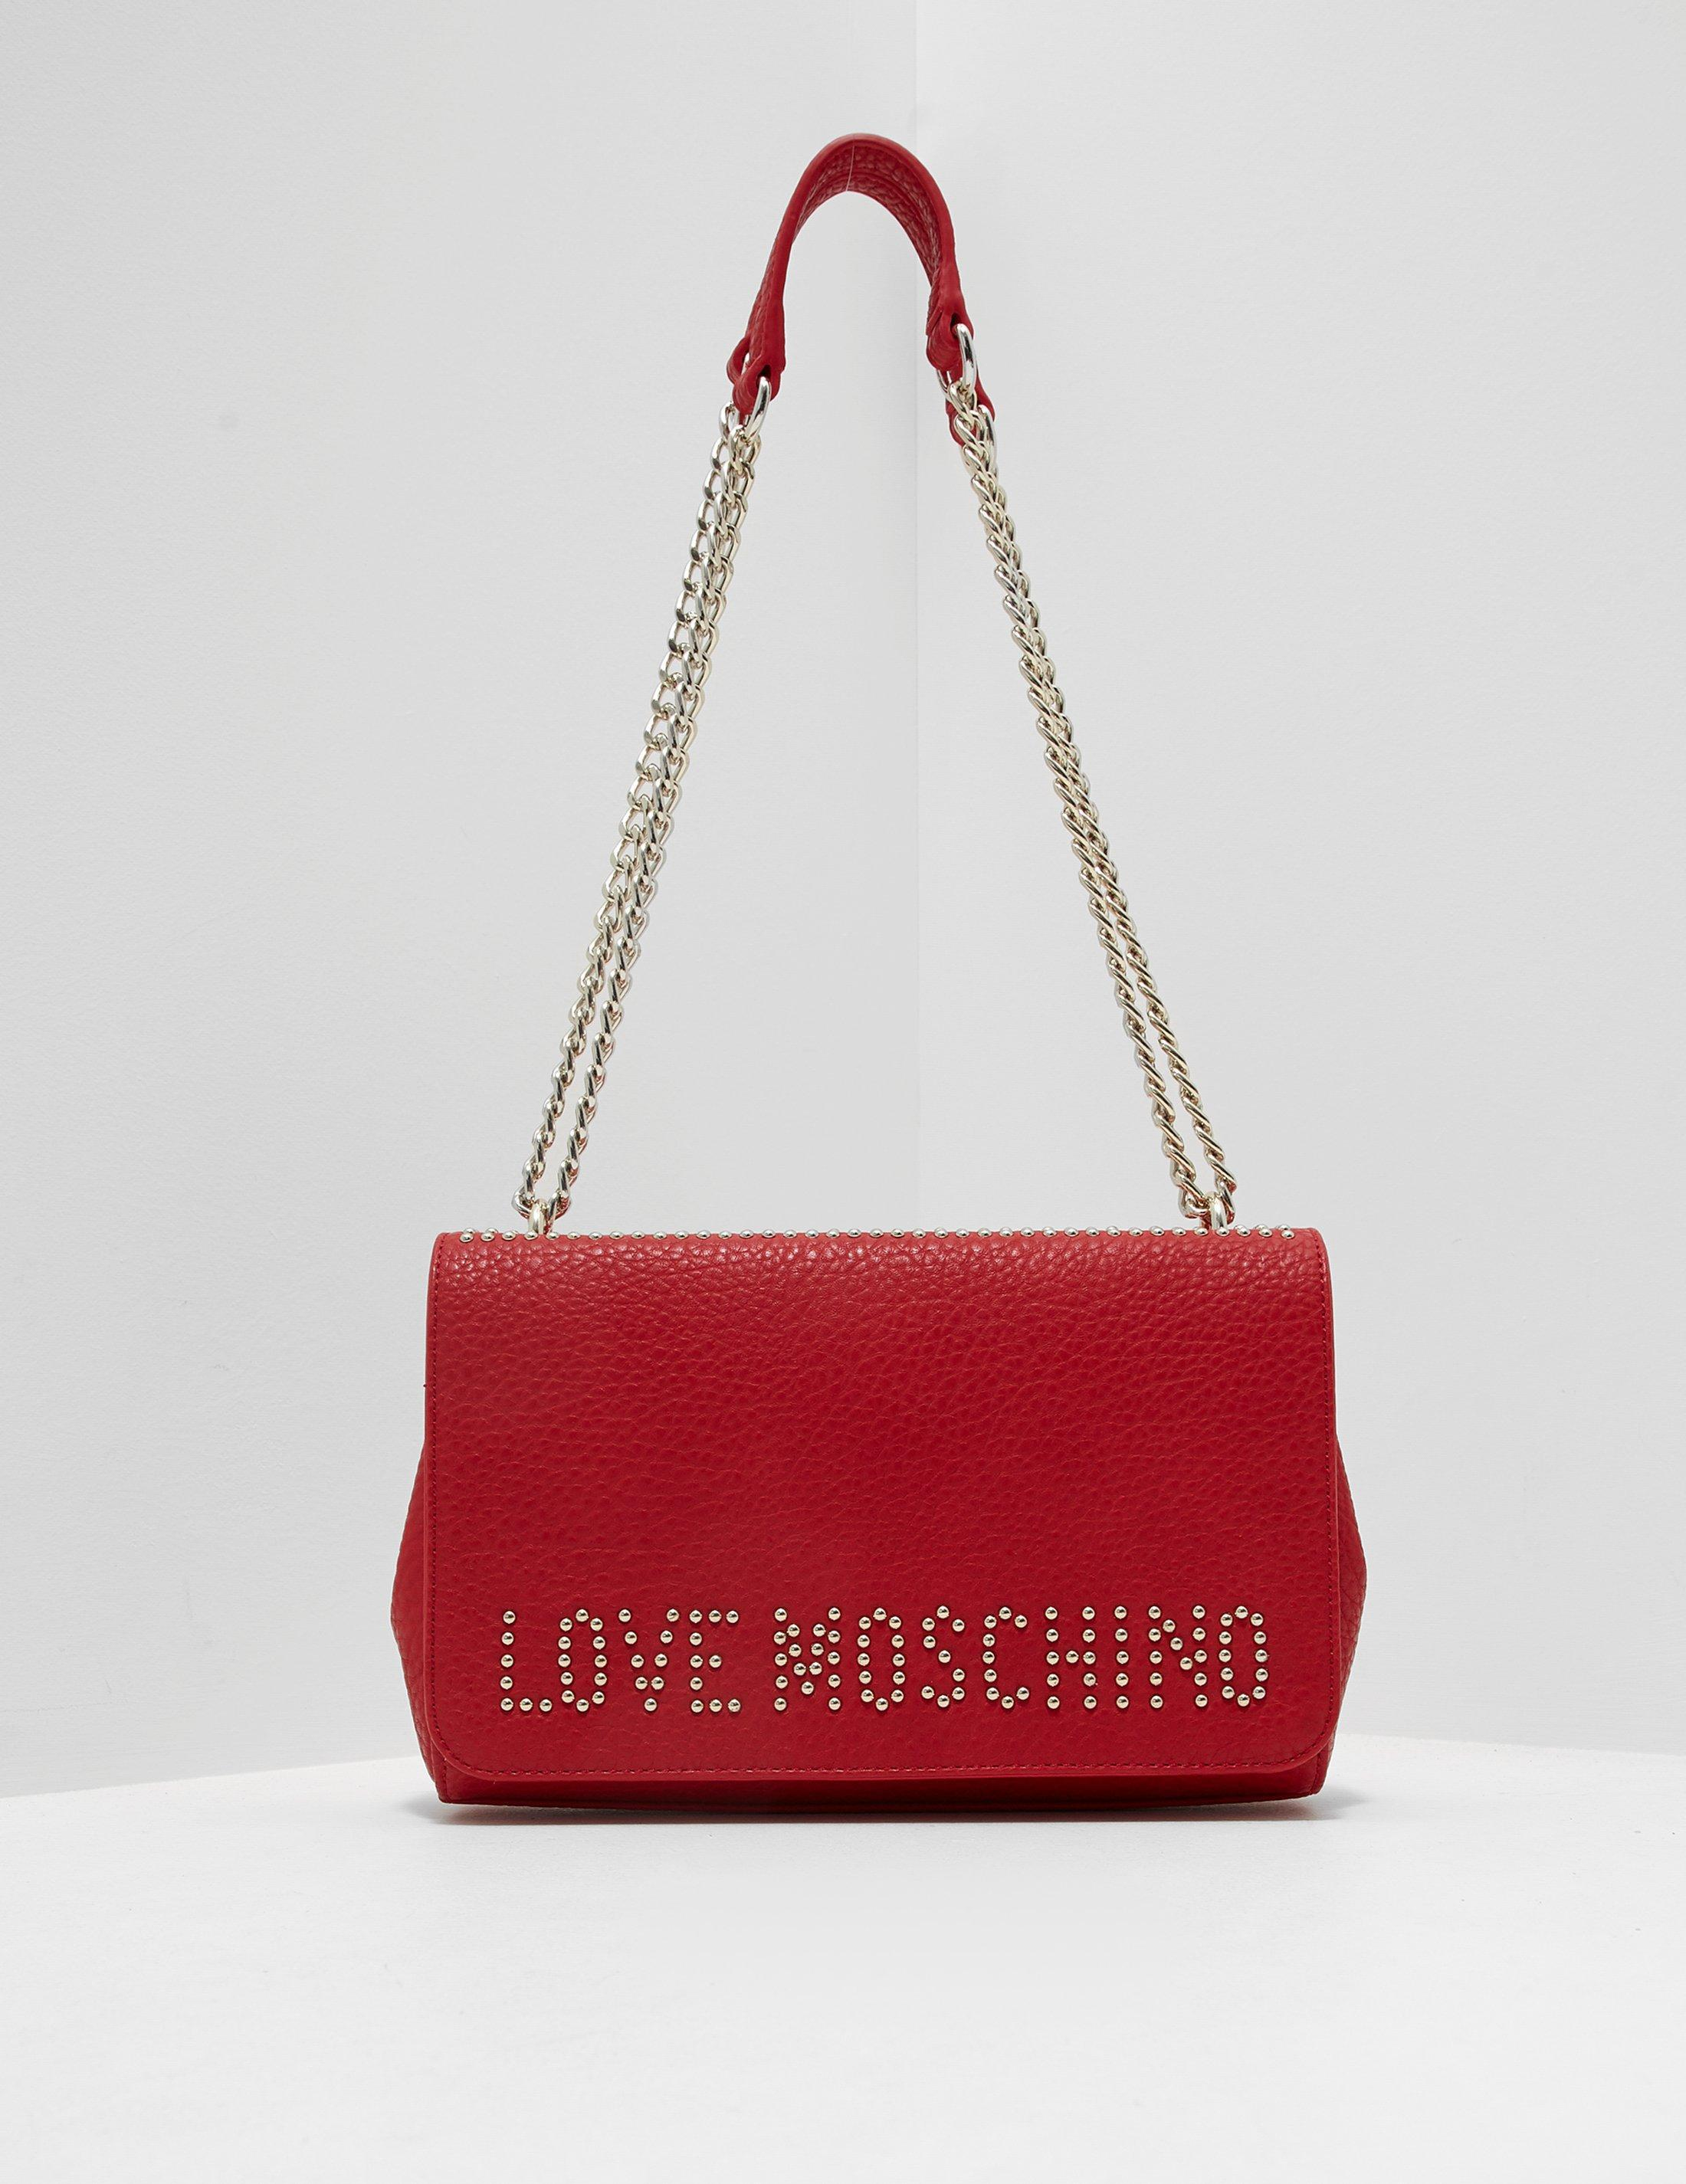 d5fa0d7a7fd Lyst - Love Moschino Womens Stud Shoulder Bag Red in Red